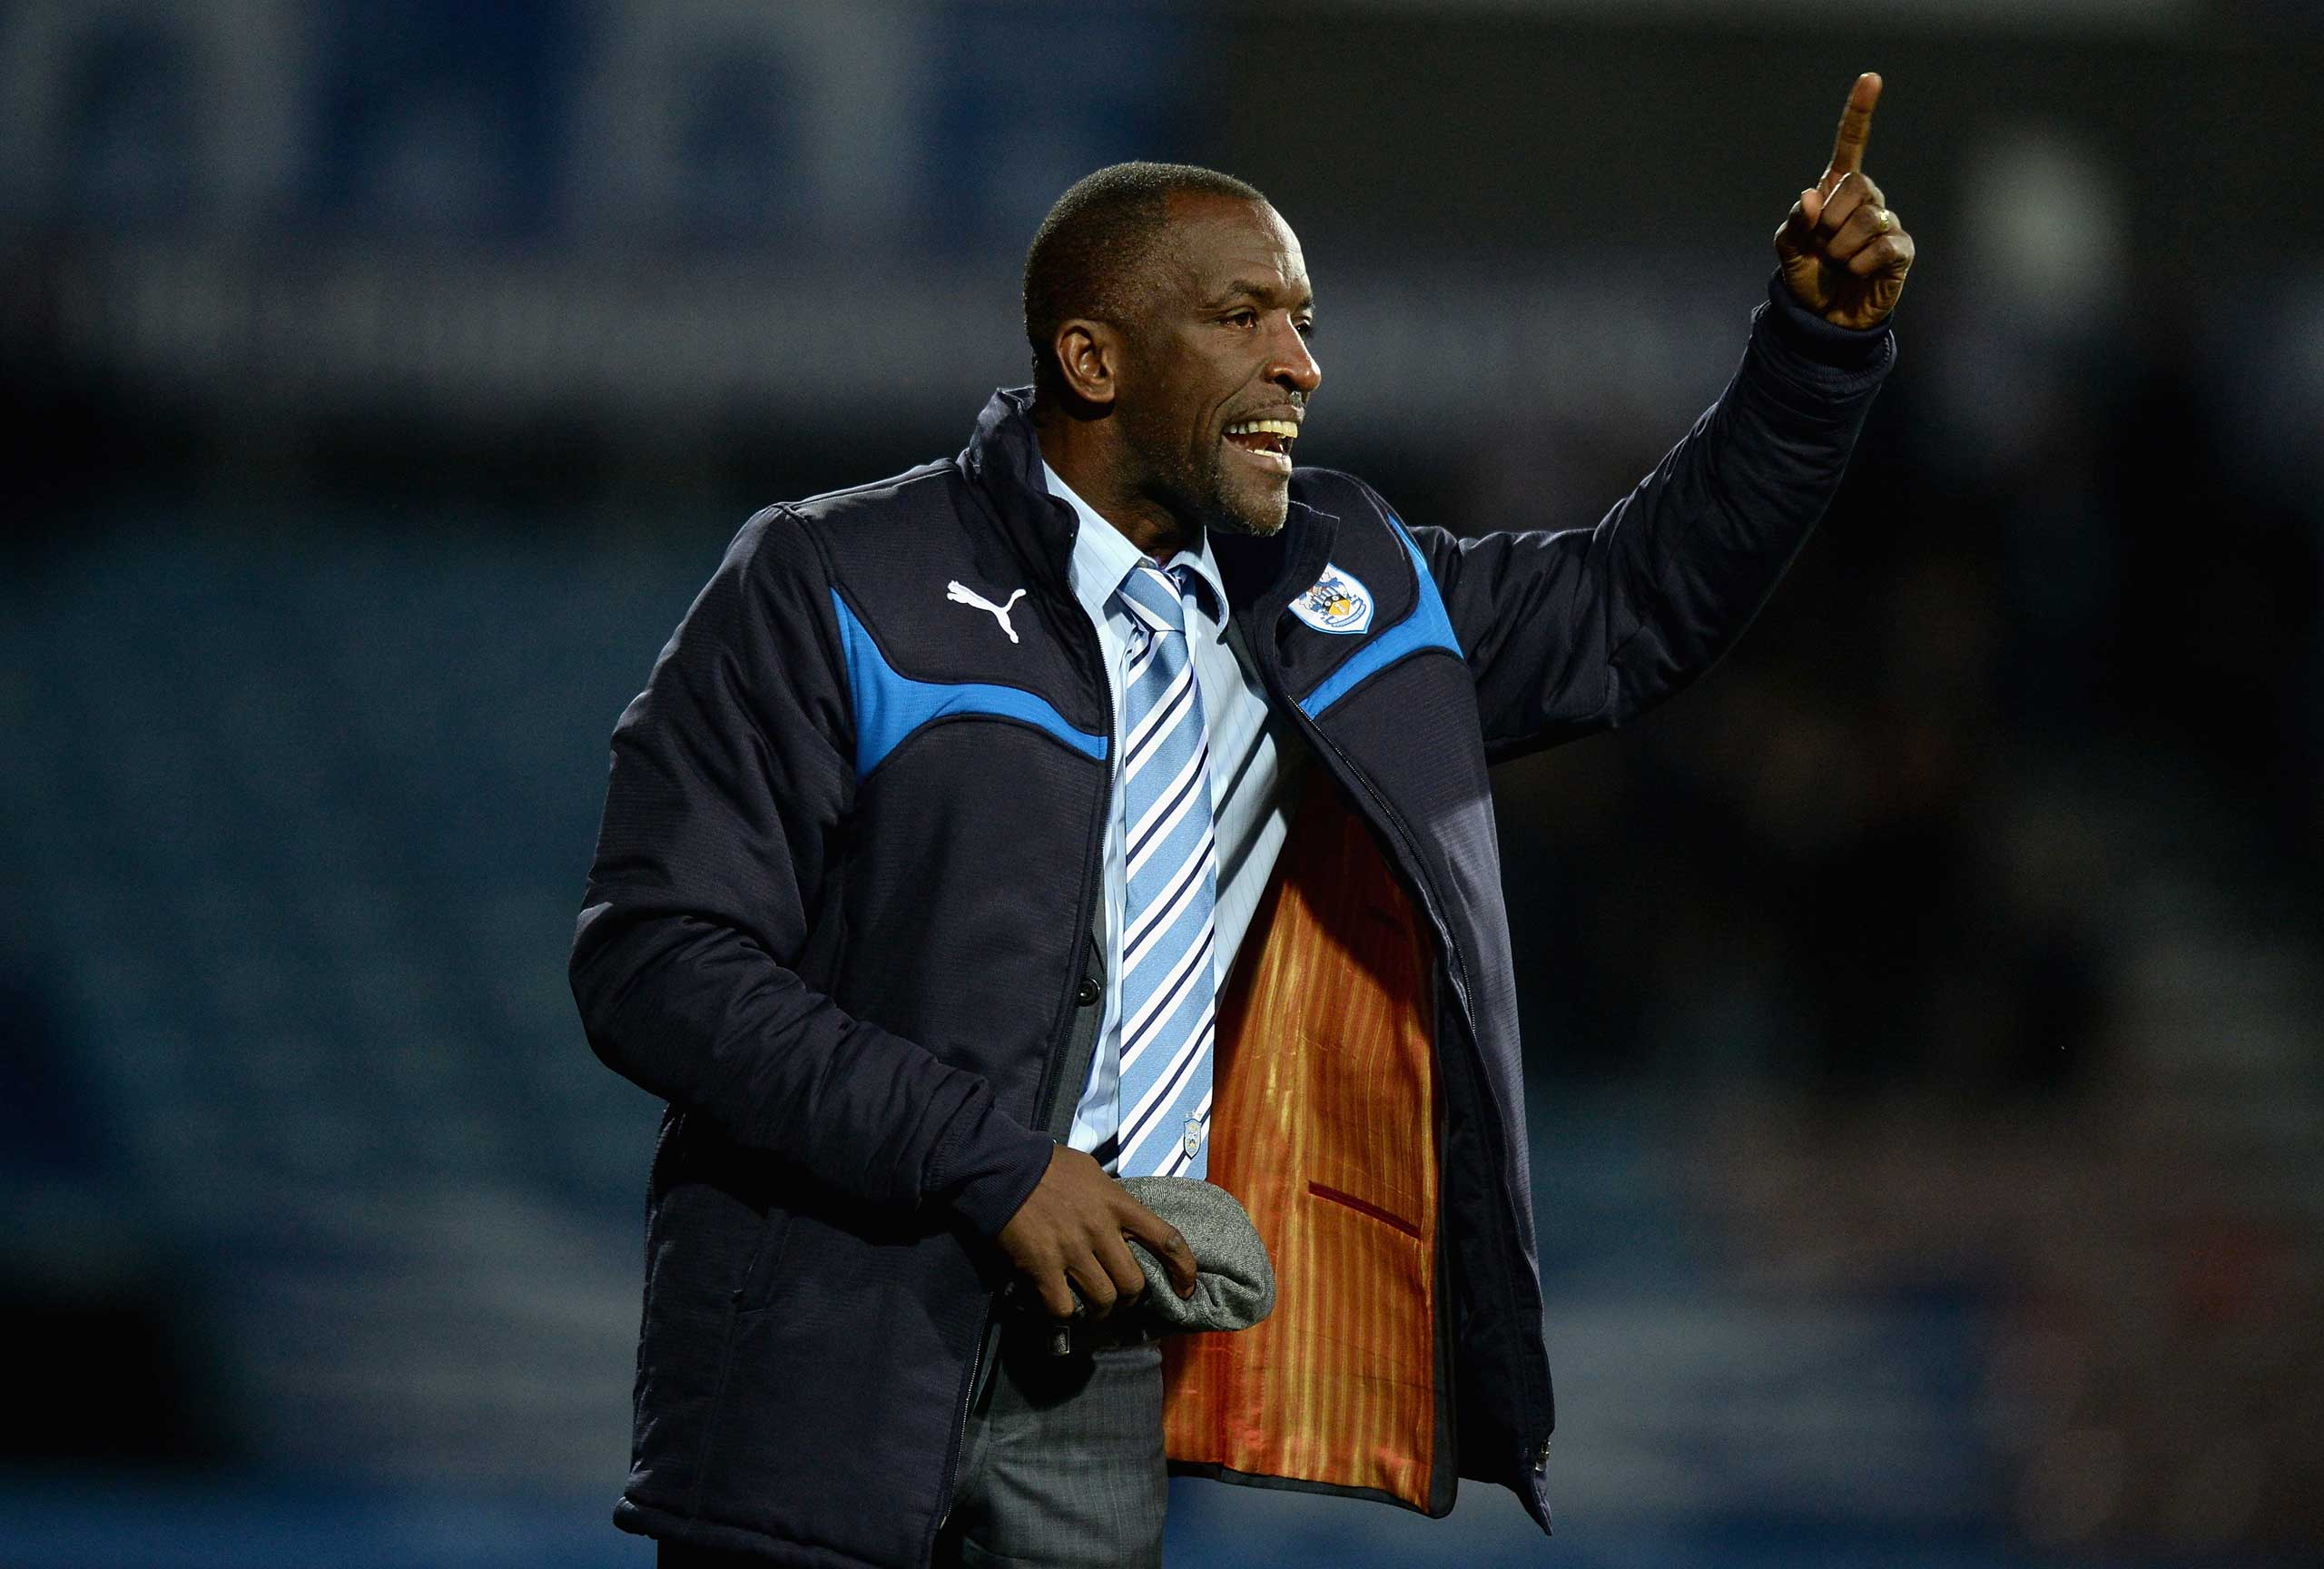 Manager Chris Powell during a Huddersfield Town home game on Oct. 21, 2014 in Huddersfield, England.